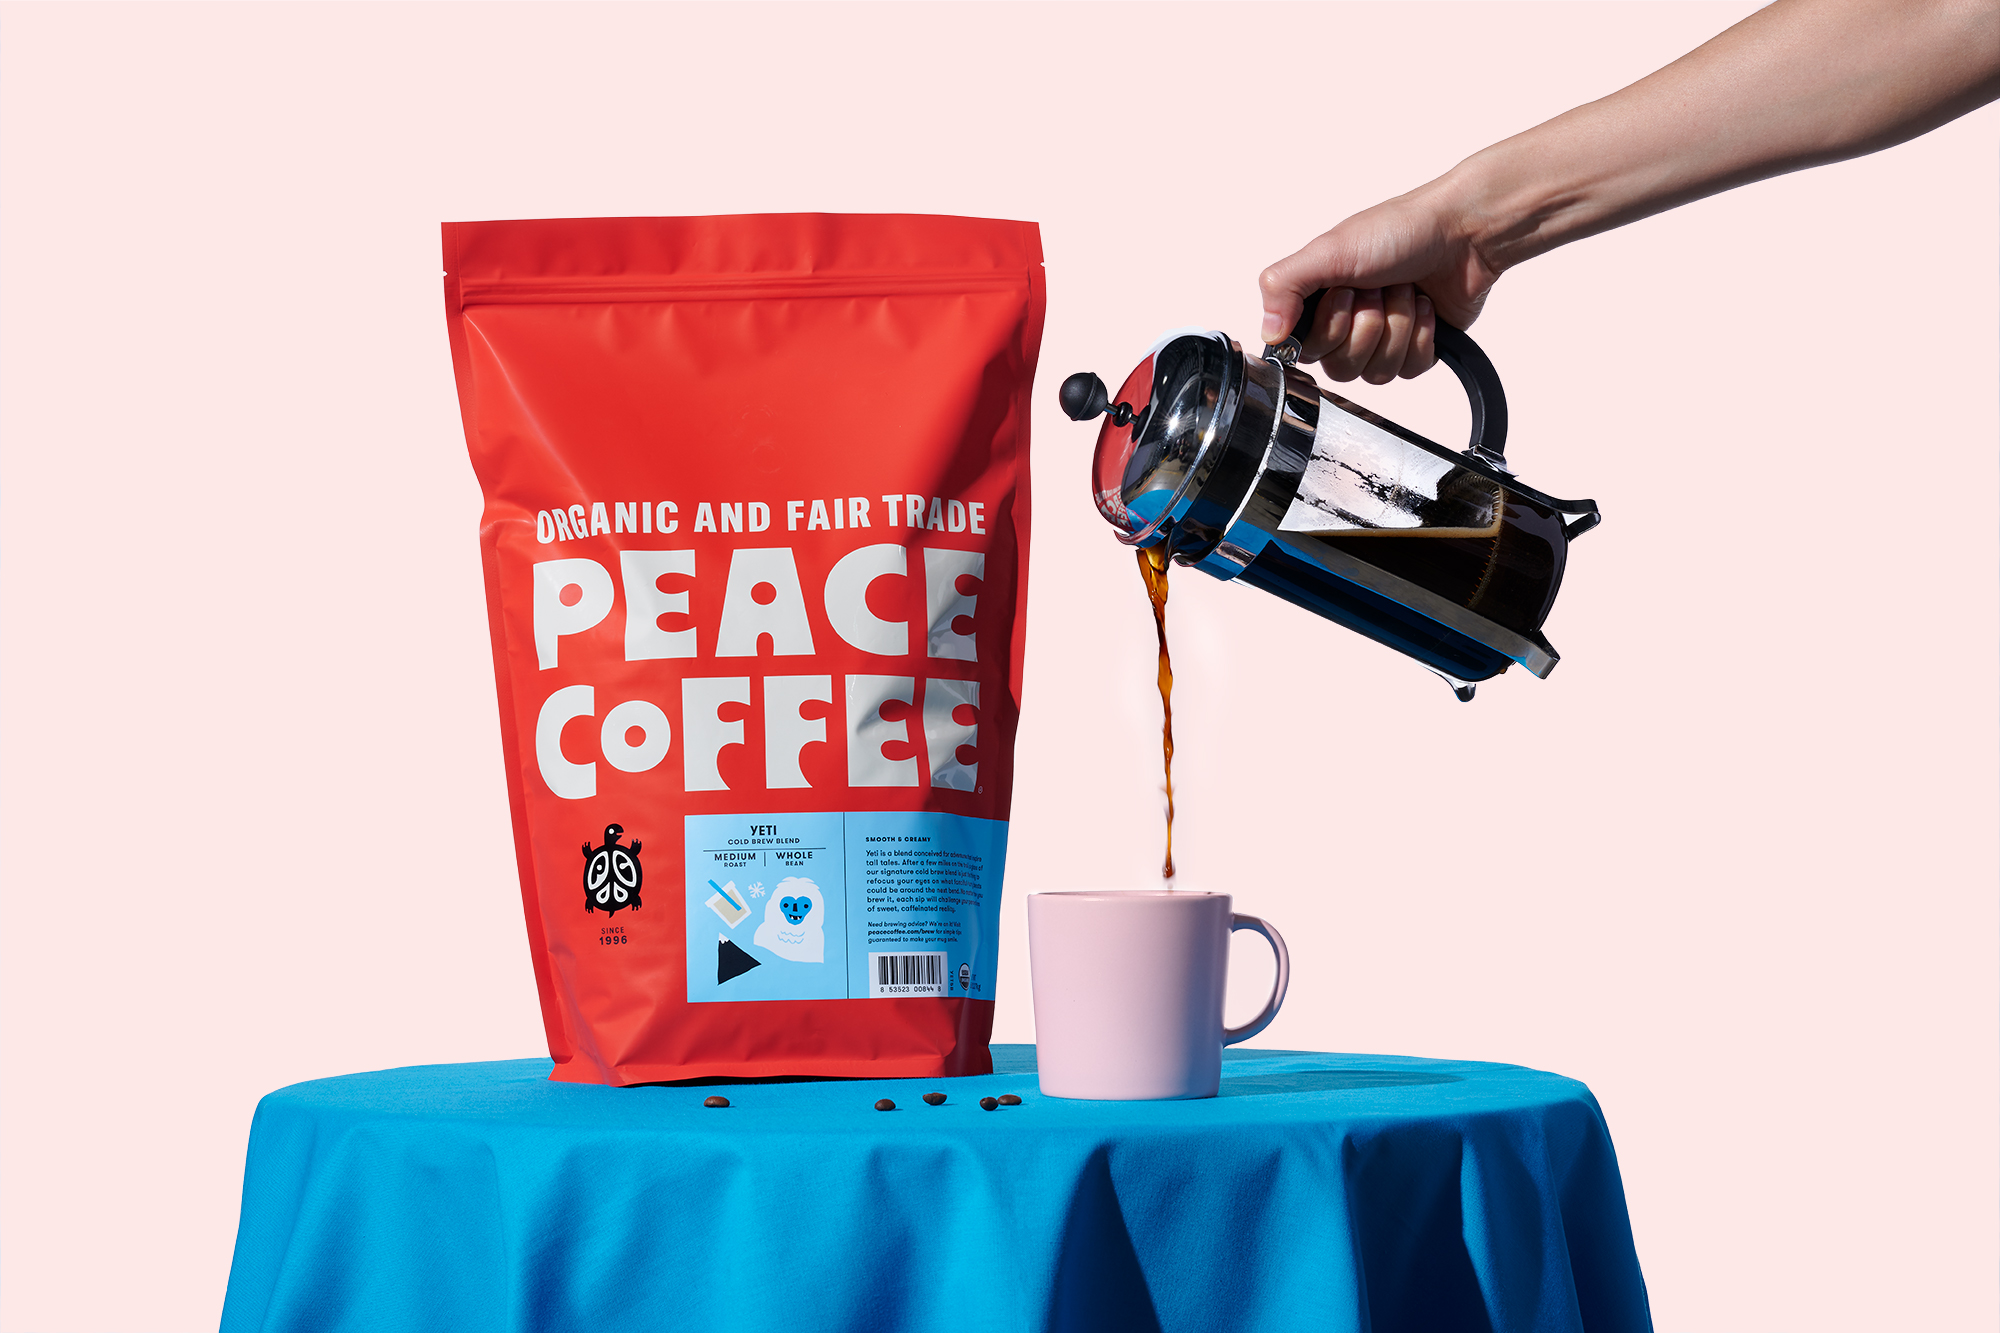 Peace Coffee rebrand, designed by Abby Haddican at Werner Design Werks.